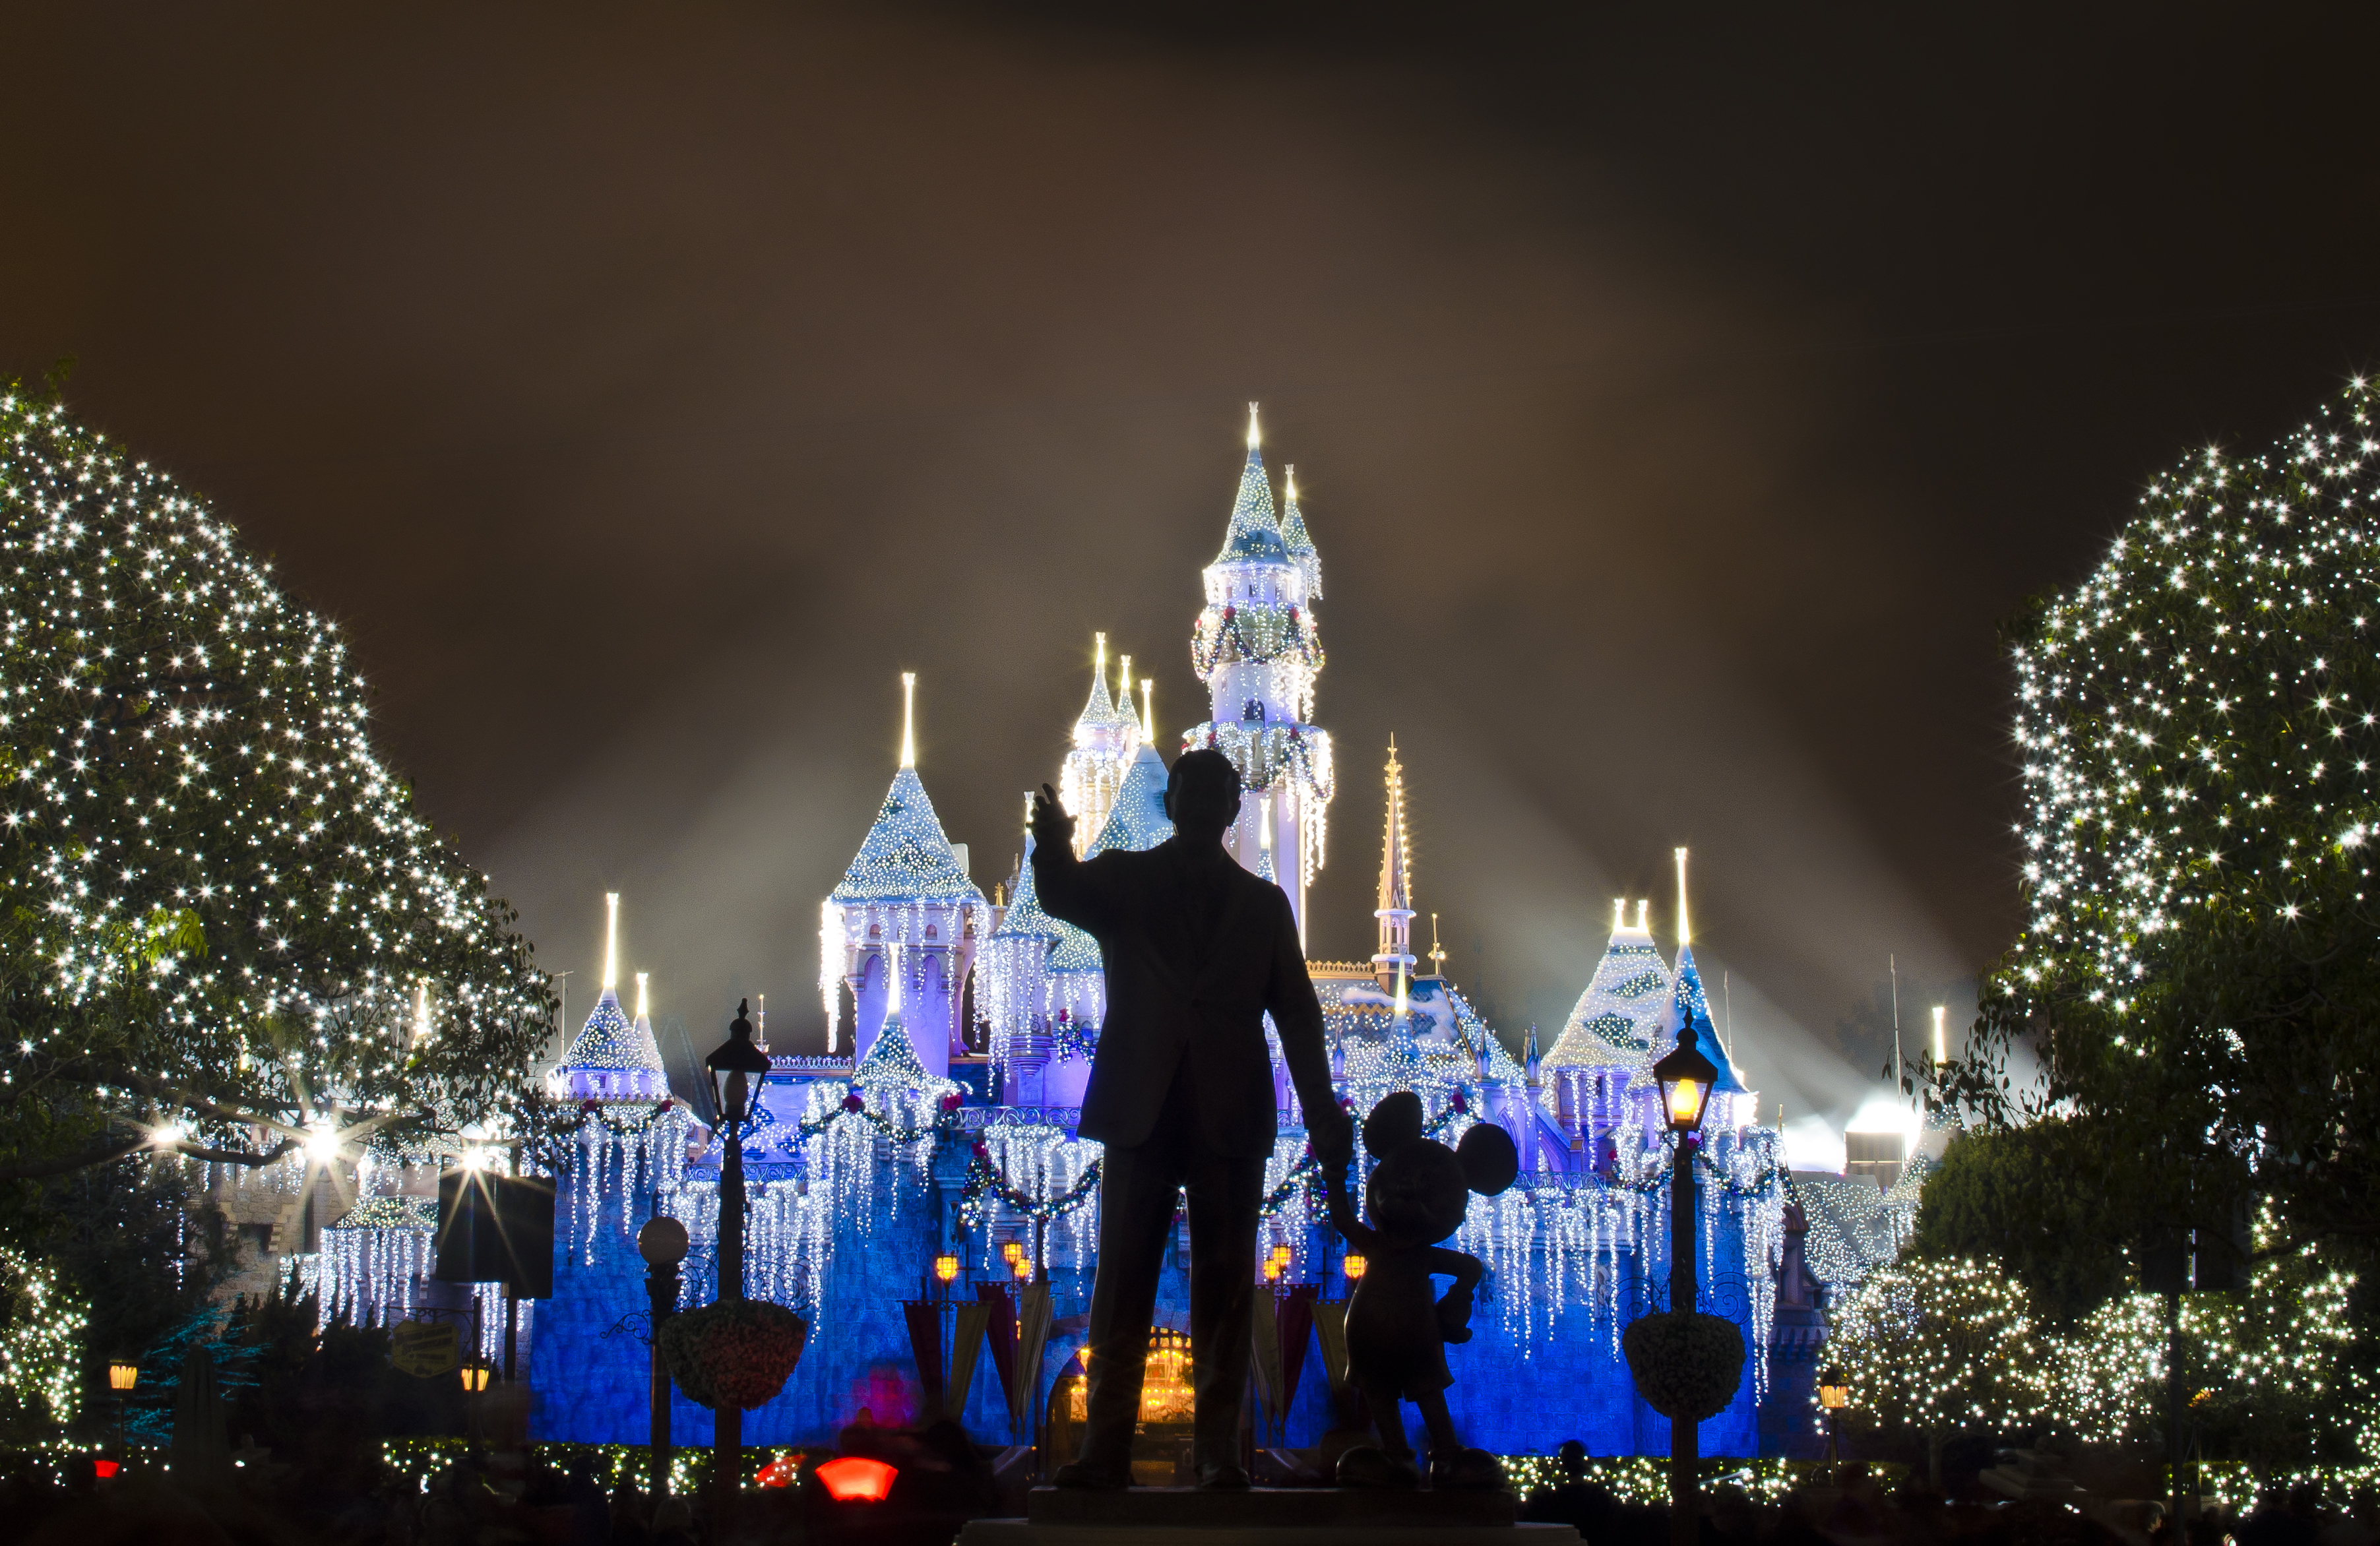 believe in holiday magic disneyland fireworks photos. Black Bedroom Furniture Sets. Home Design Ideas